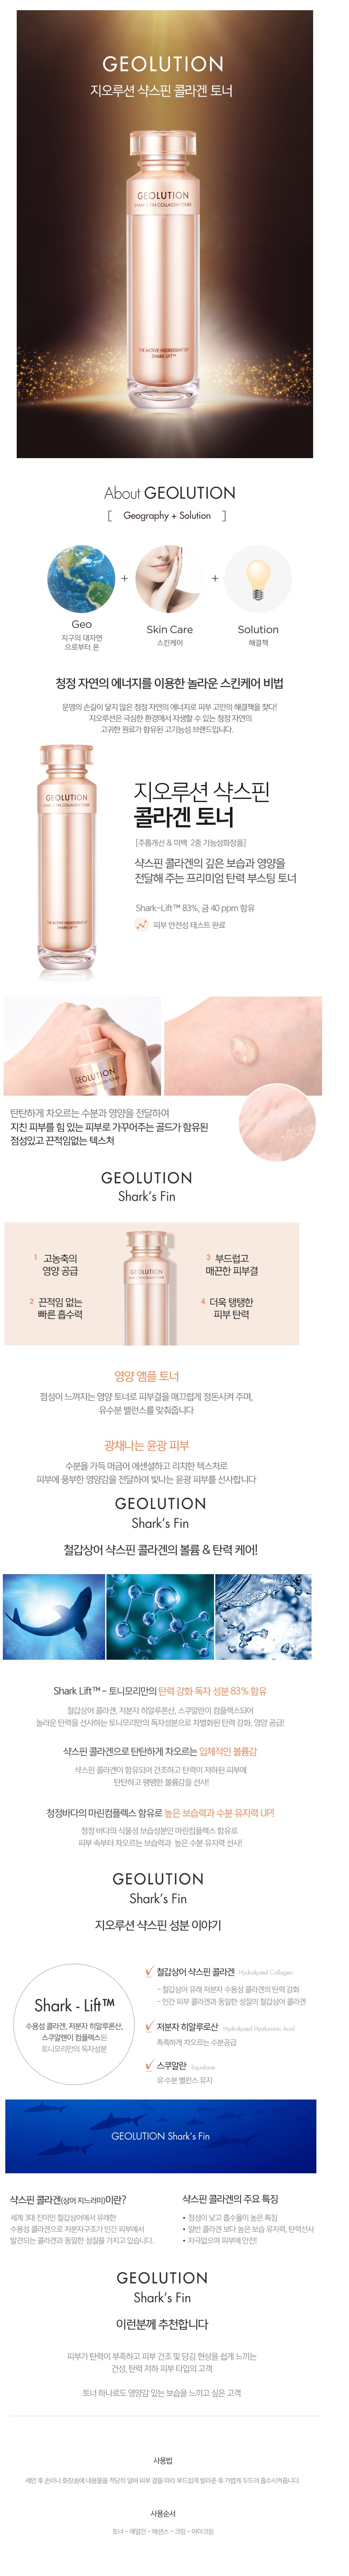 Tony Moly Geolution Shark's Fin Collagen Toner and Cream korean cosmetic skincare product online shop malaysia italy germany2